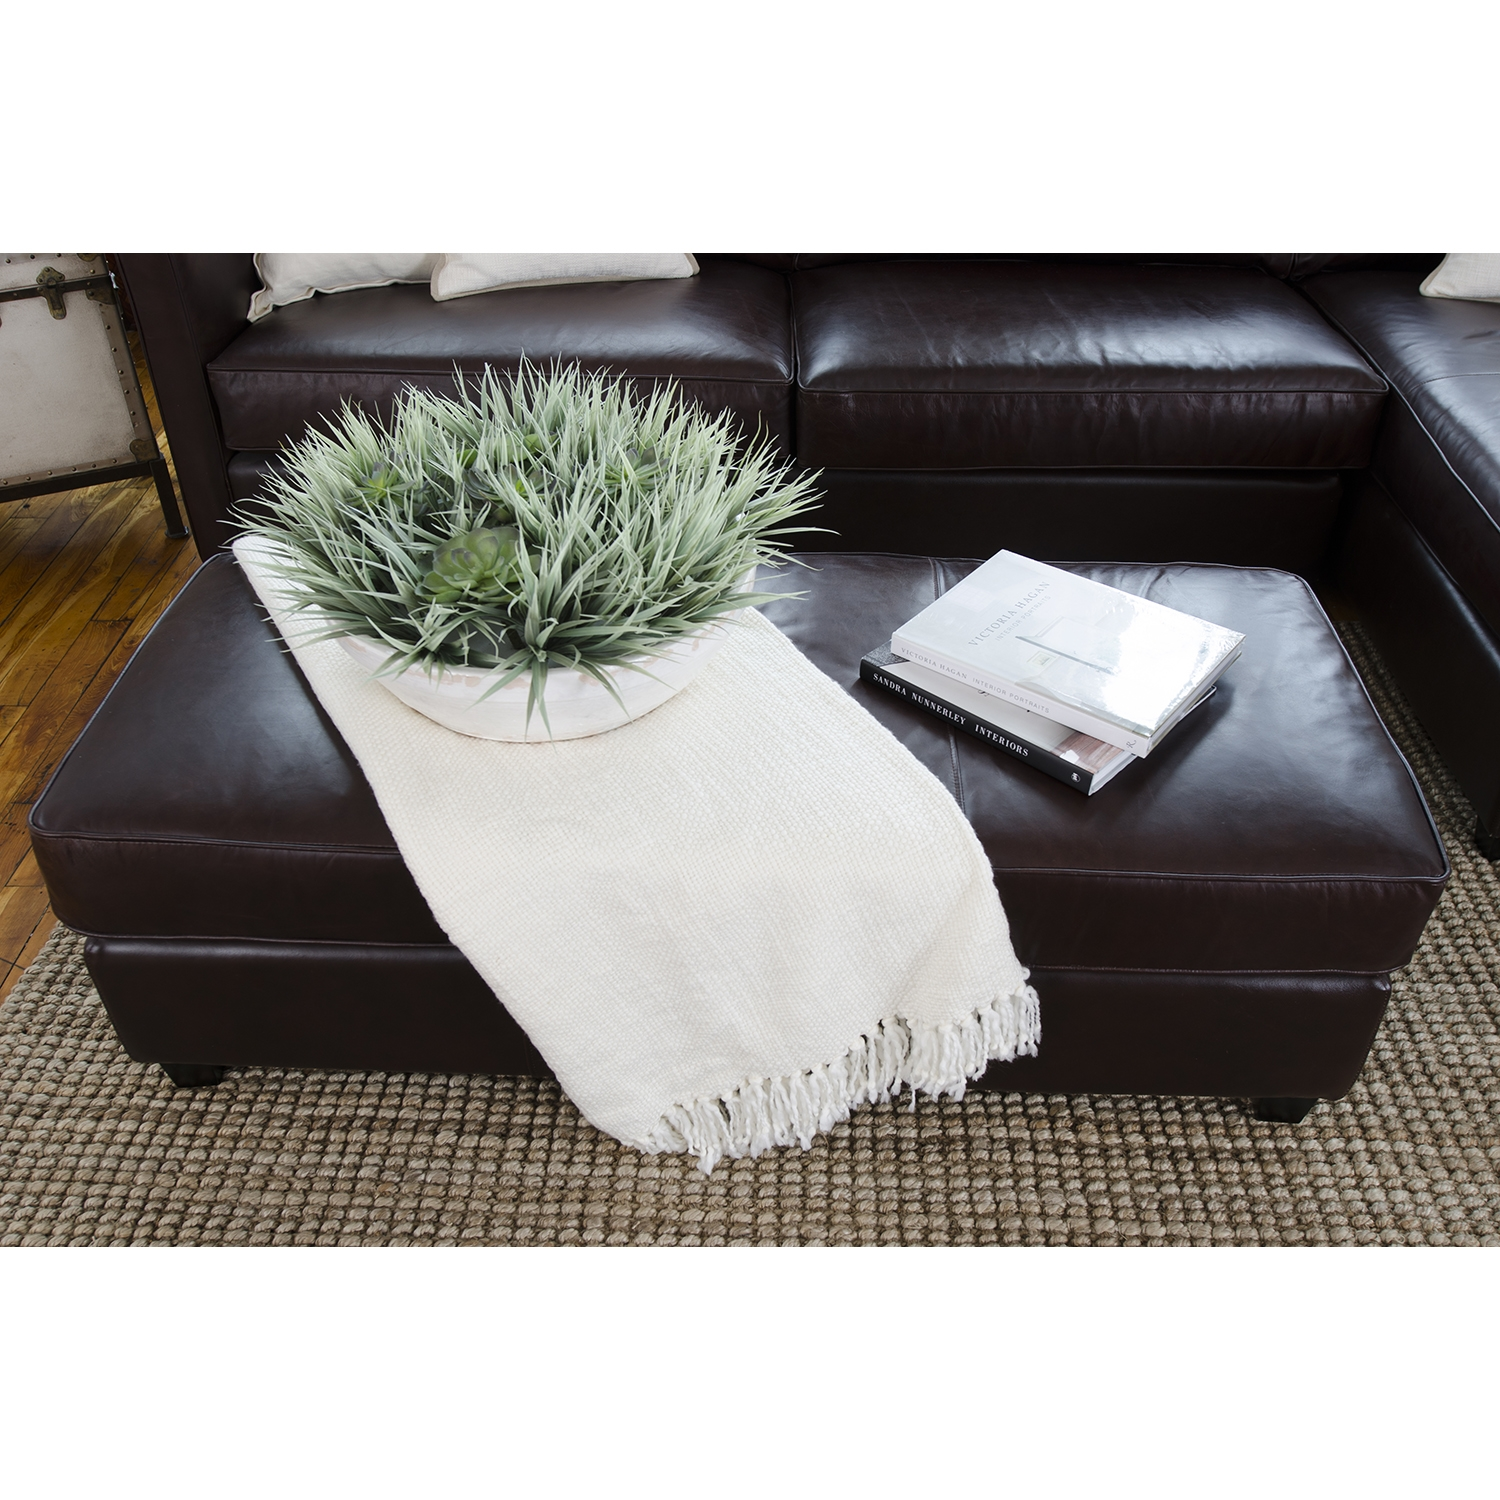 Urban 4-Piece Sectional Set - Left Arm Facing Chaise, Rectangle Ottoman - ELE-URB-4PC-RAFL-LAFC-SC-SC-RCO-CAPP-1